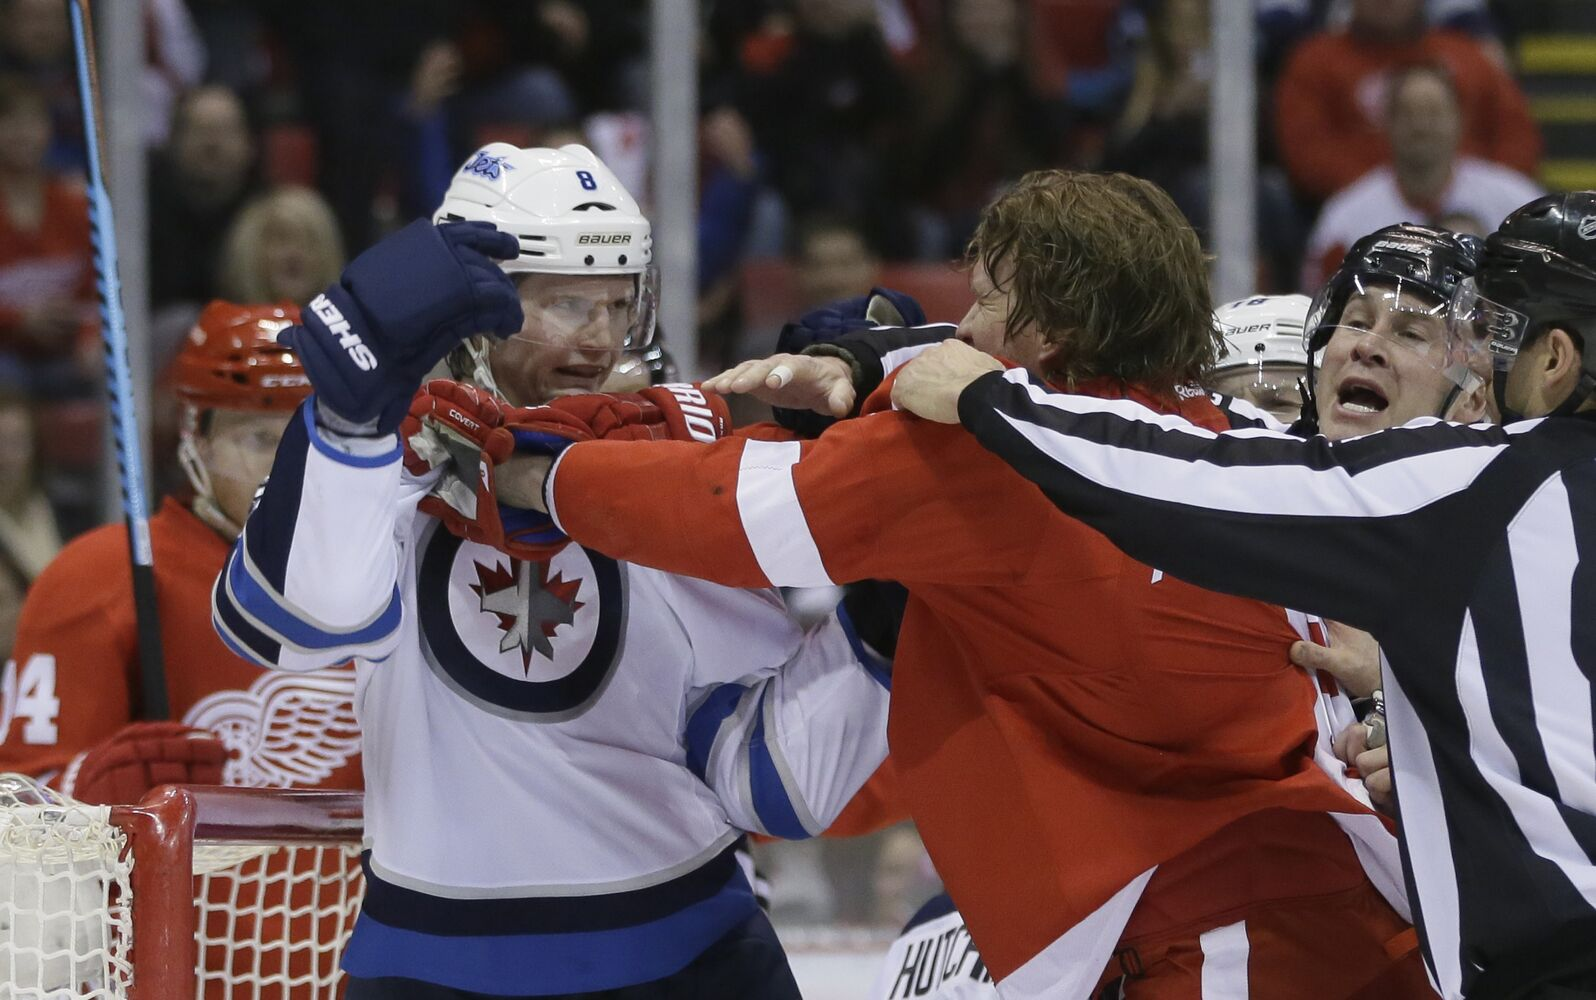 Jets defenseman Jacob Trouba mixes it up with the Red Wings Justin Abdelkader. (Carlos Osorio / The Associated Press)